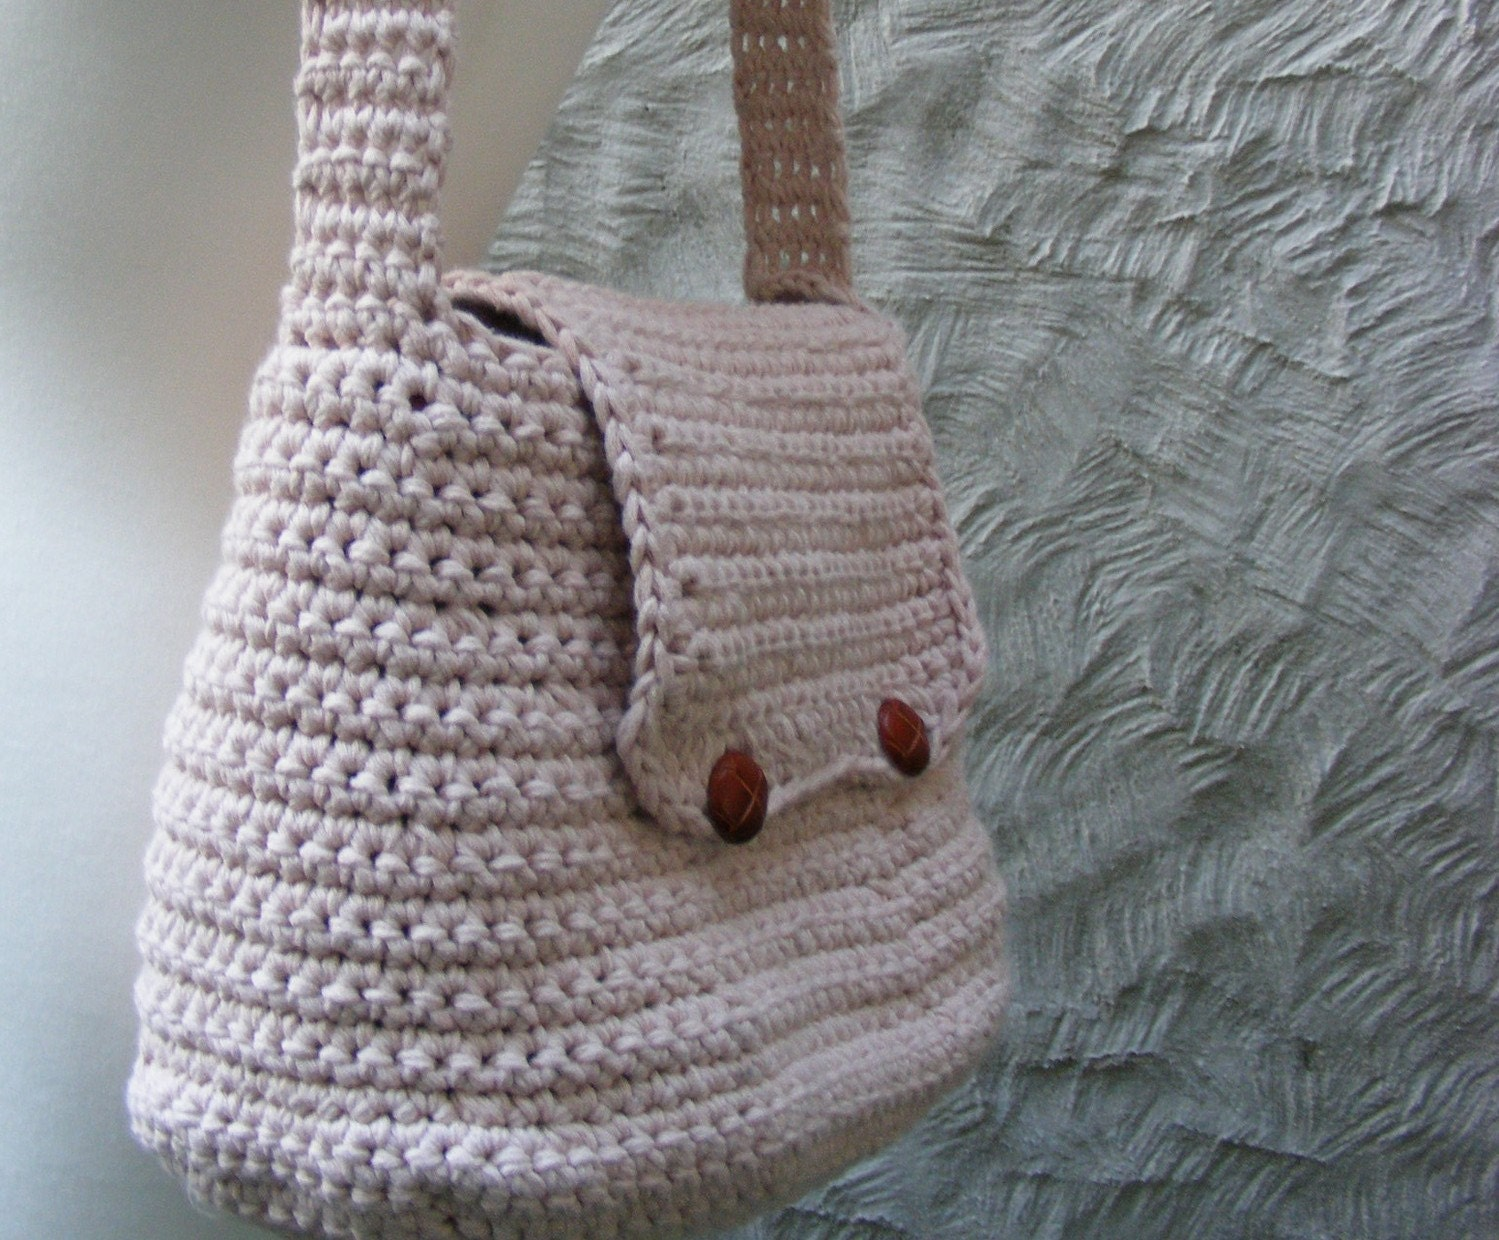 Crochet Patterns For Purses : EASY CROCHET PURSE PATTERNS How To Crochet